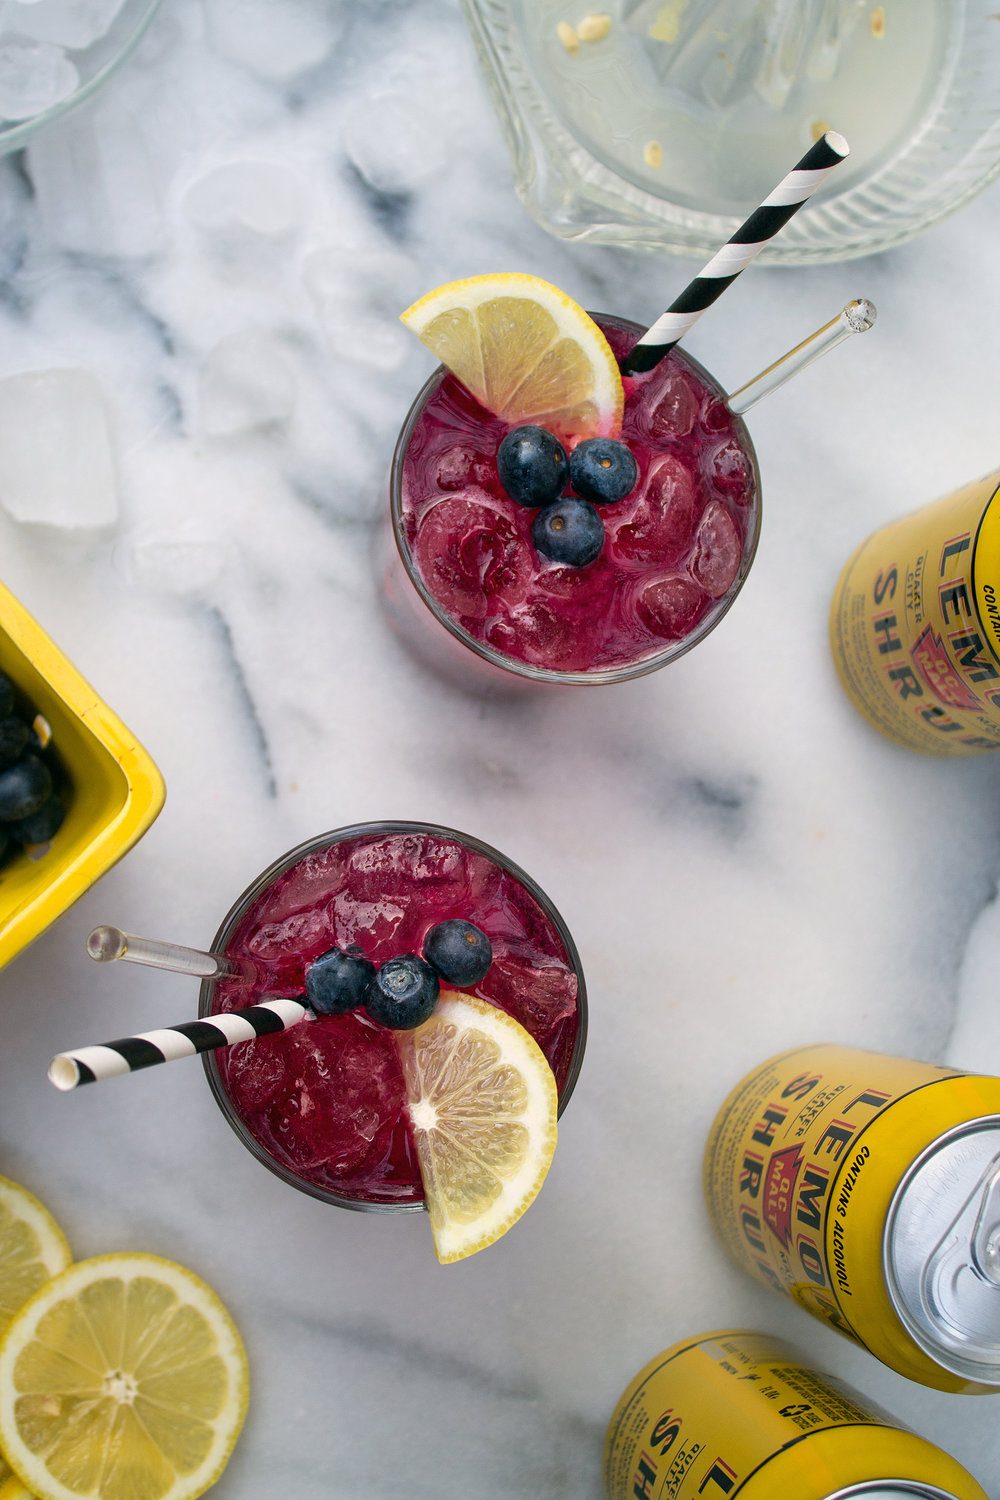 Boozy Blueberry Lemonade featuring QCMalt. Unusually Lovely Blog.